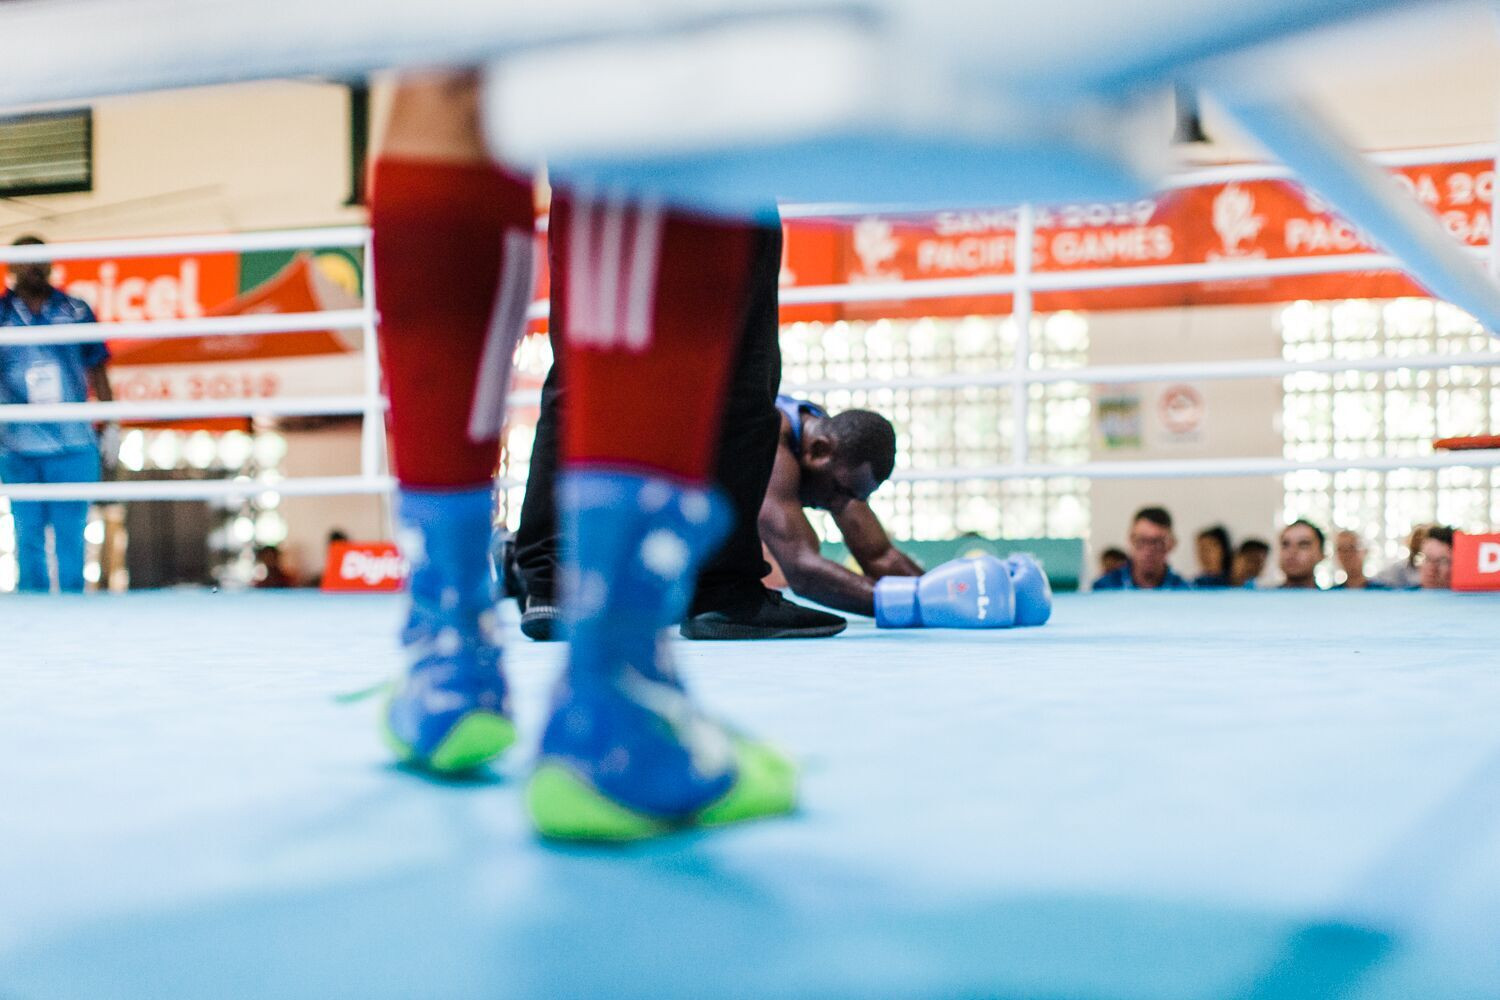 A beaten boxer takes in his defeat on the canvas after his fight in Samoa ©Games News Service